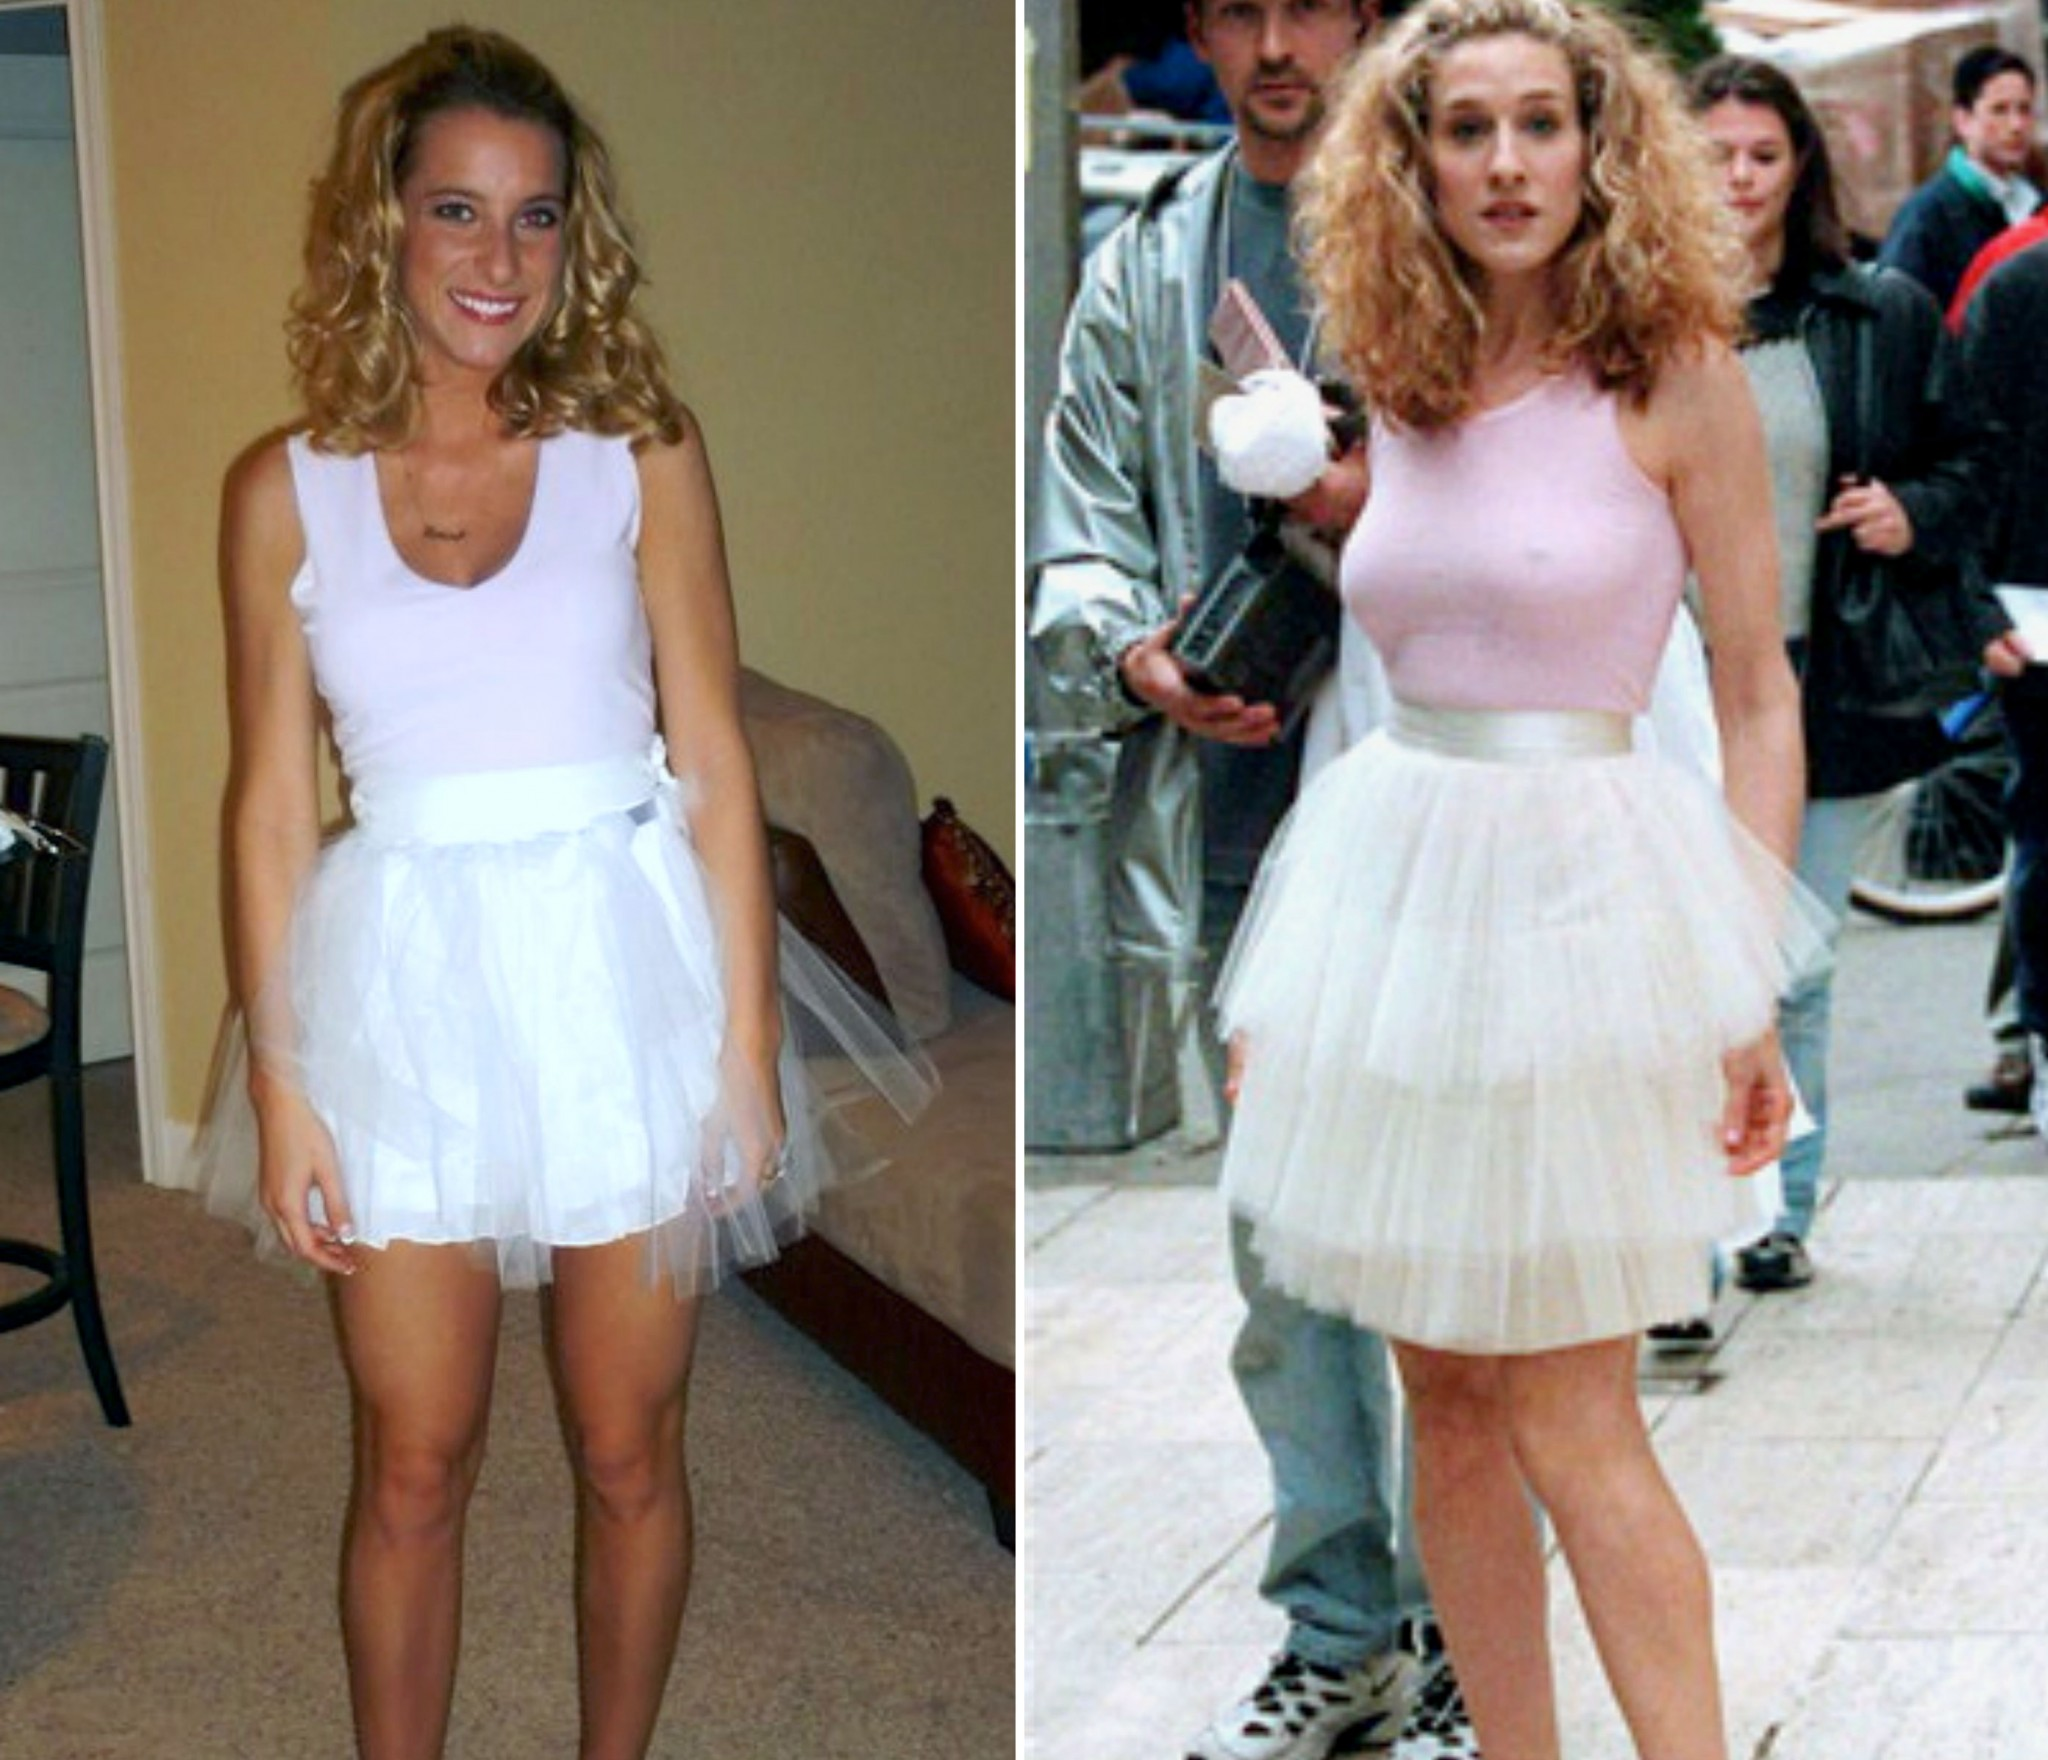 5. Carrie Bradshaw from Sex and the City